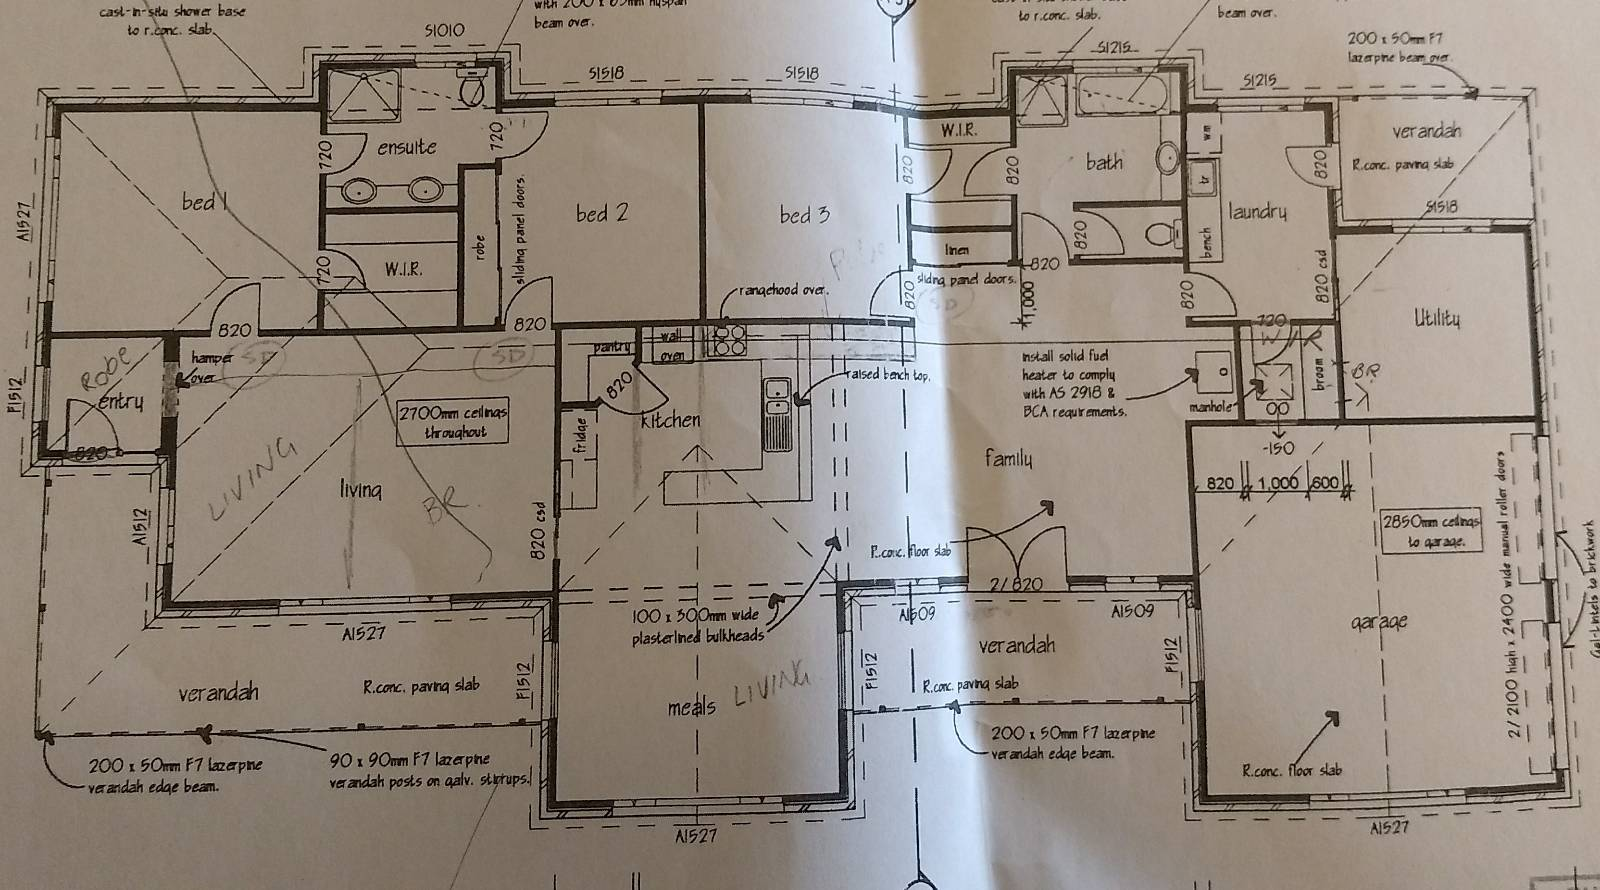 Suggestions on appalling house plans please!